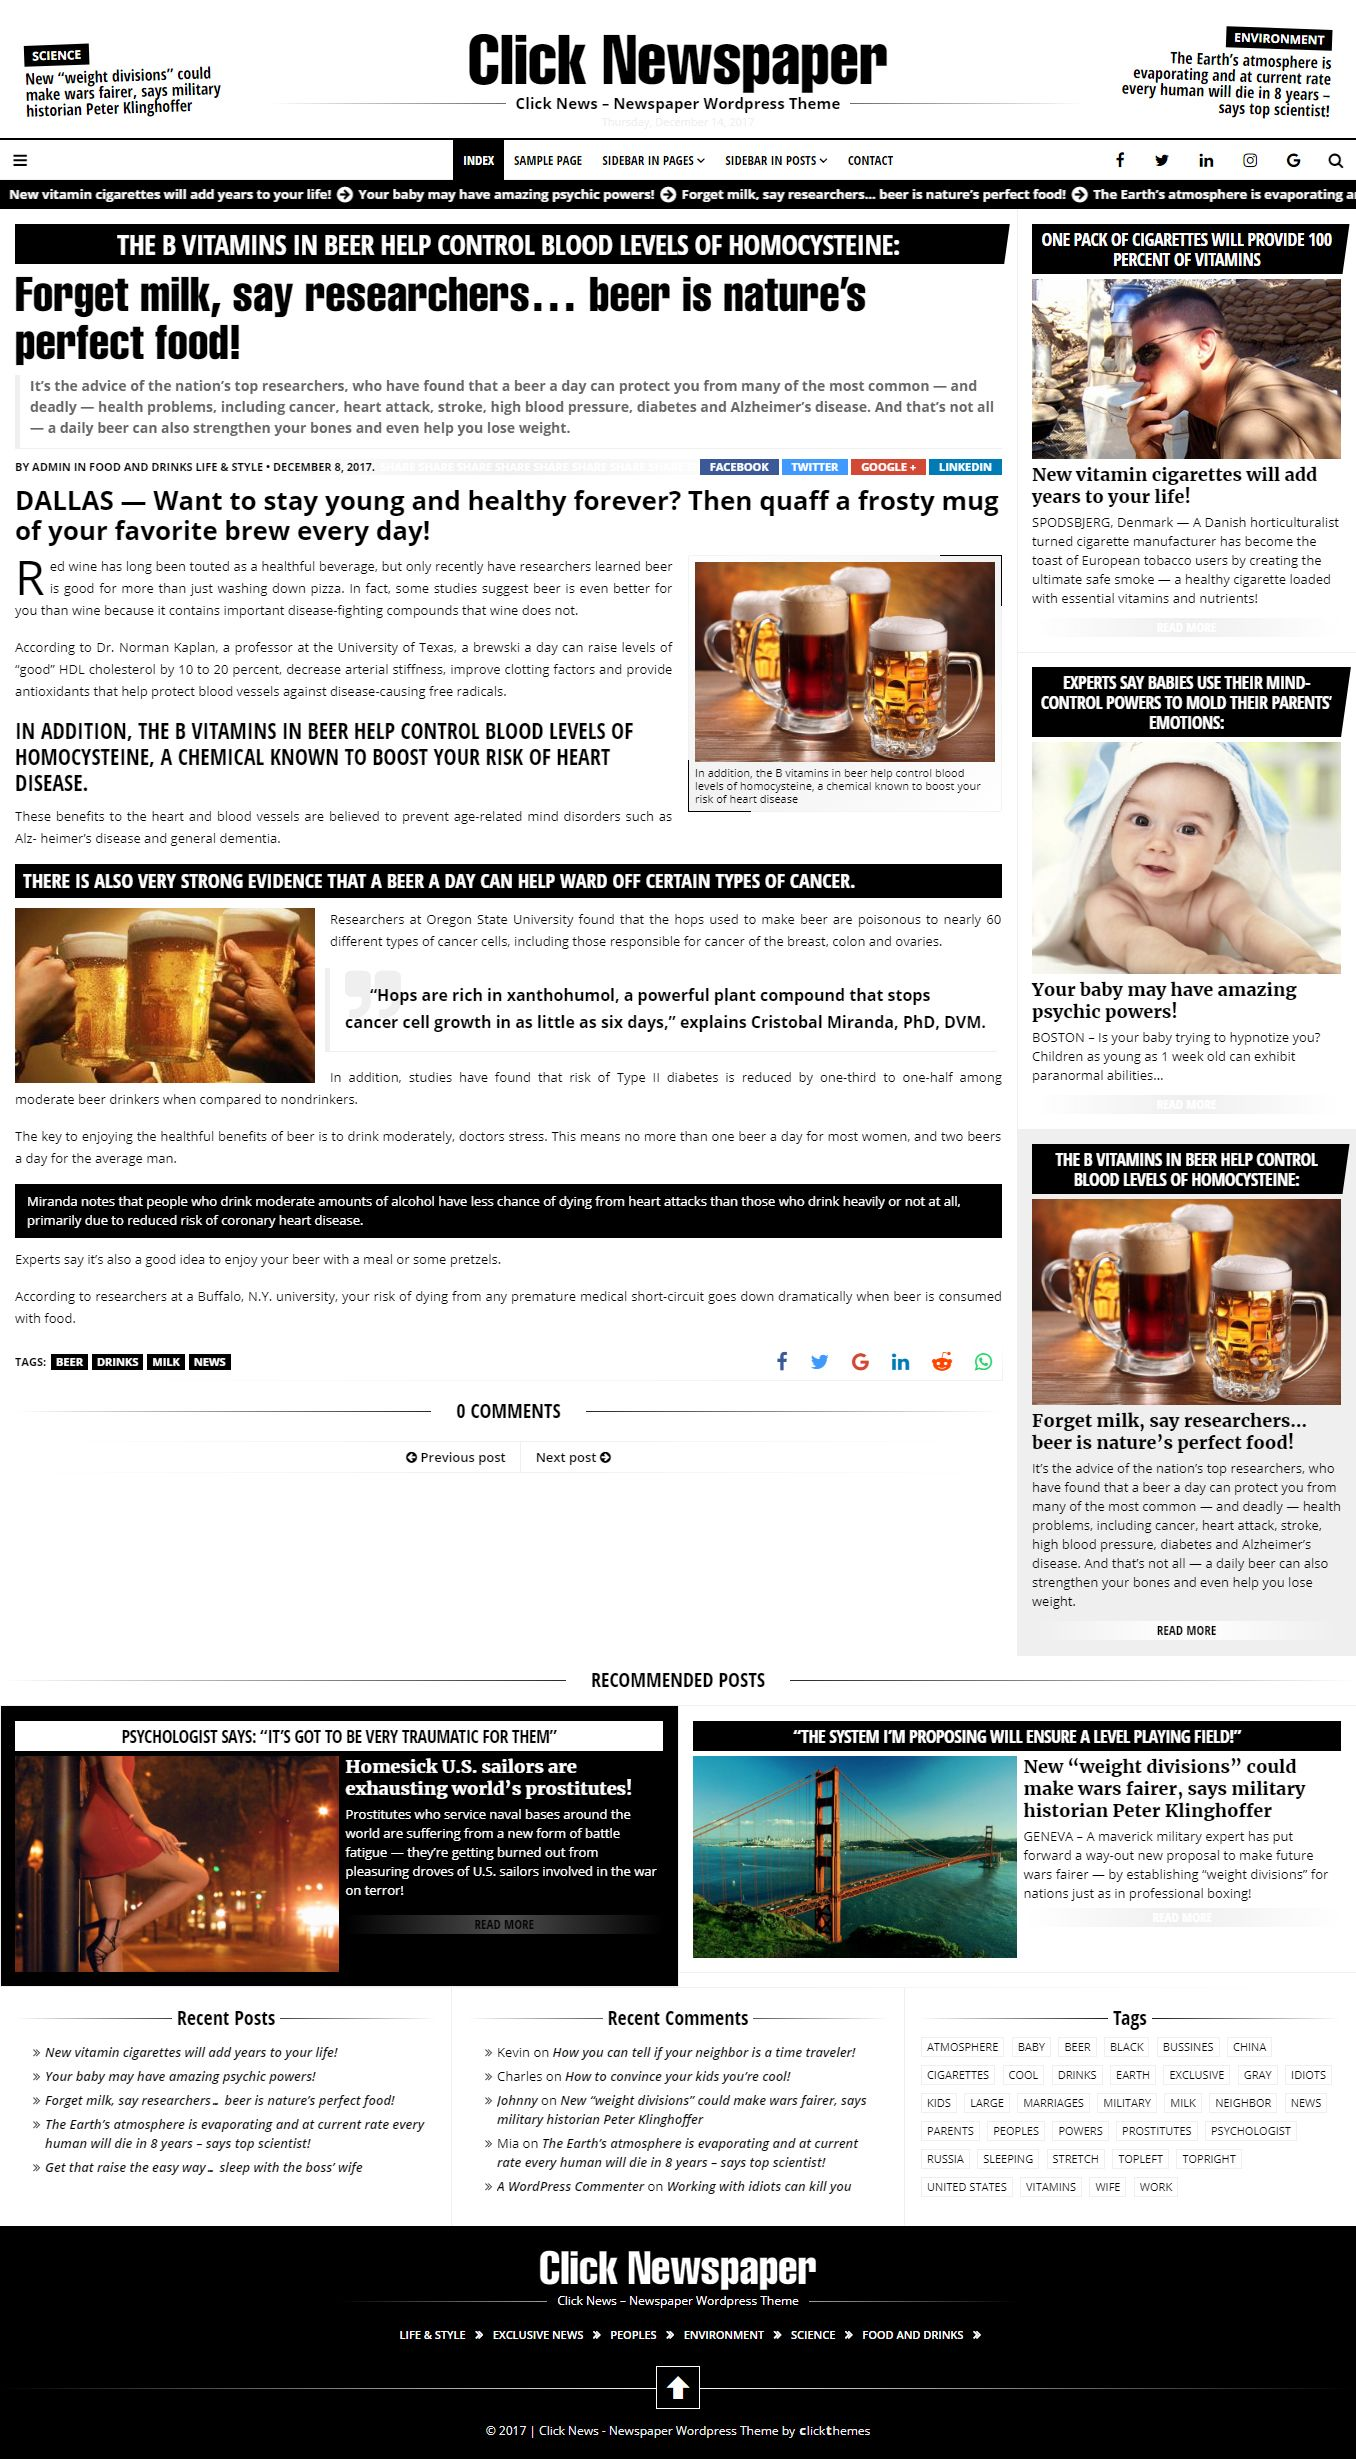 Click Newspaper - Wordpress Theme Screenshot 1